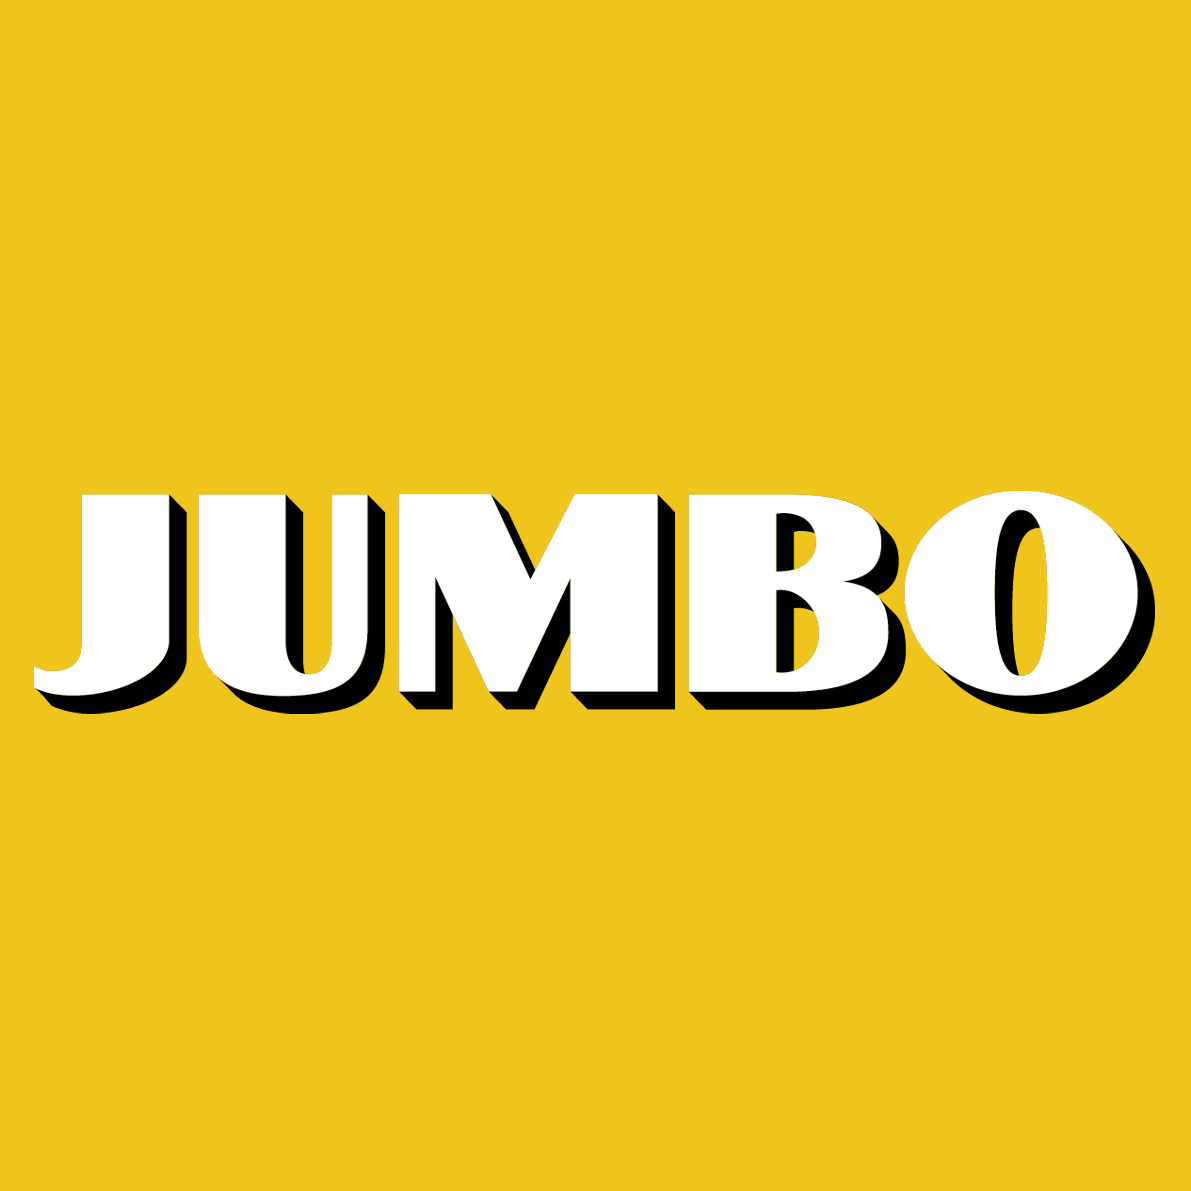 9c0f963de0d Vacature voor Consultant Data & Analytics bij Jumbo | Top of Minds